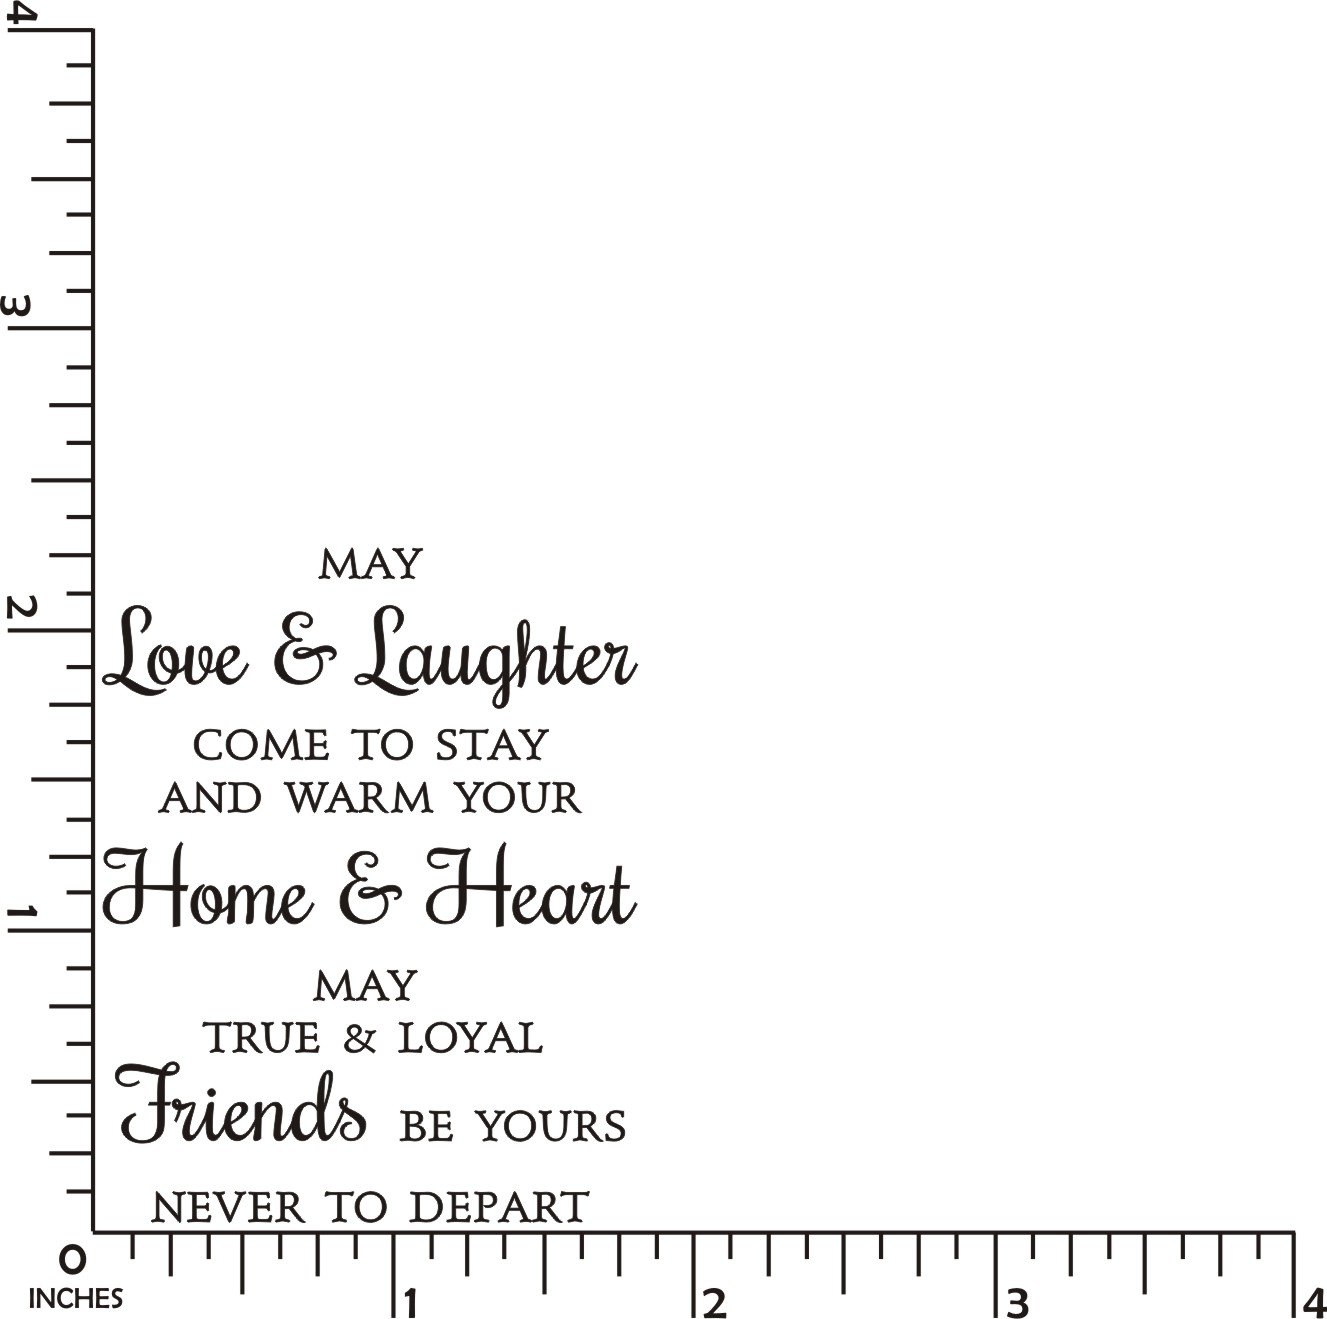 Love /& Laughter Friends Greeting Rubber Stamp by DRS Designs Rubber Stamps